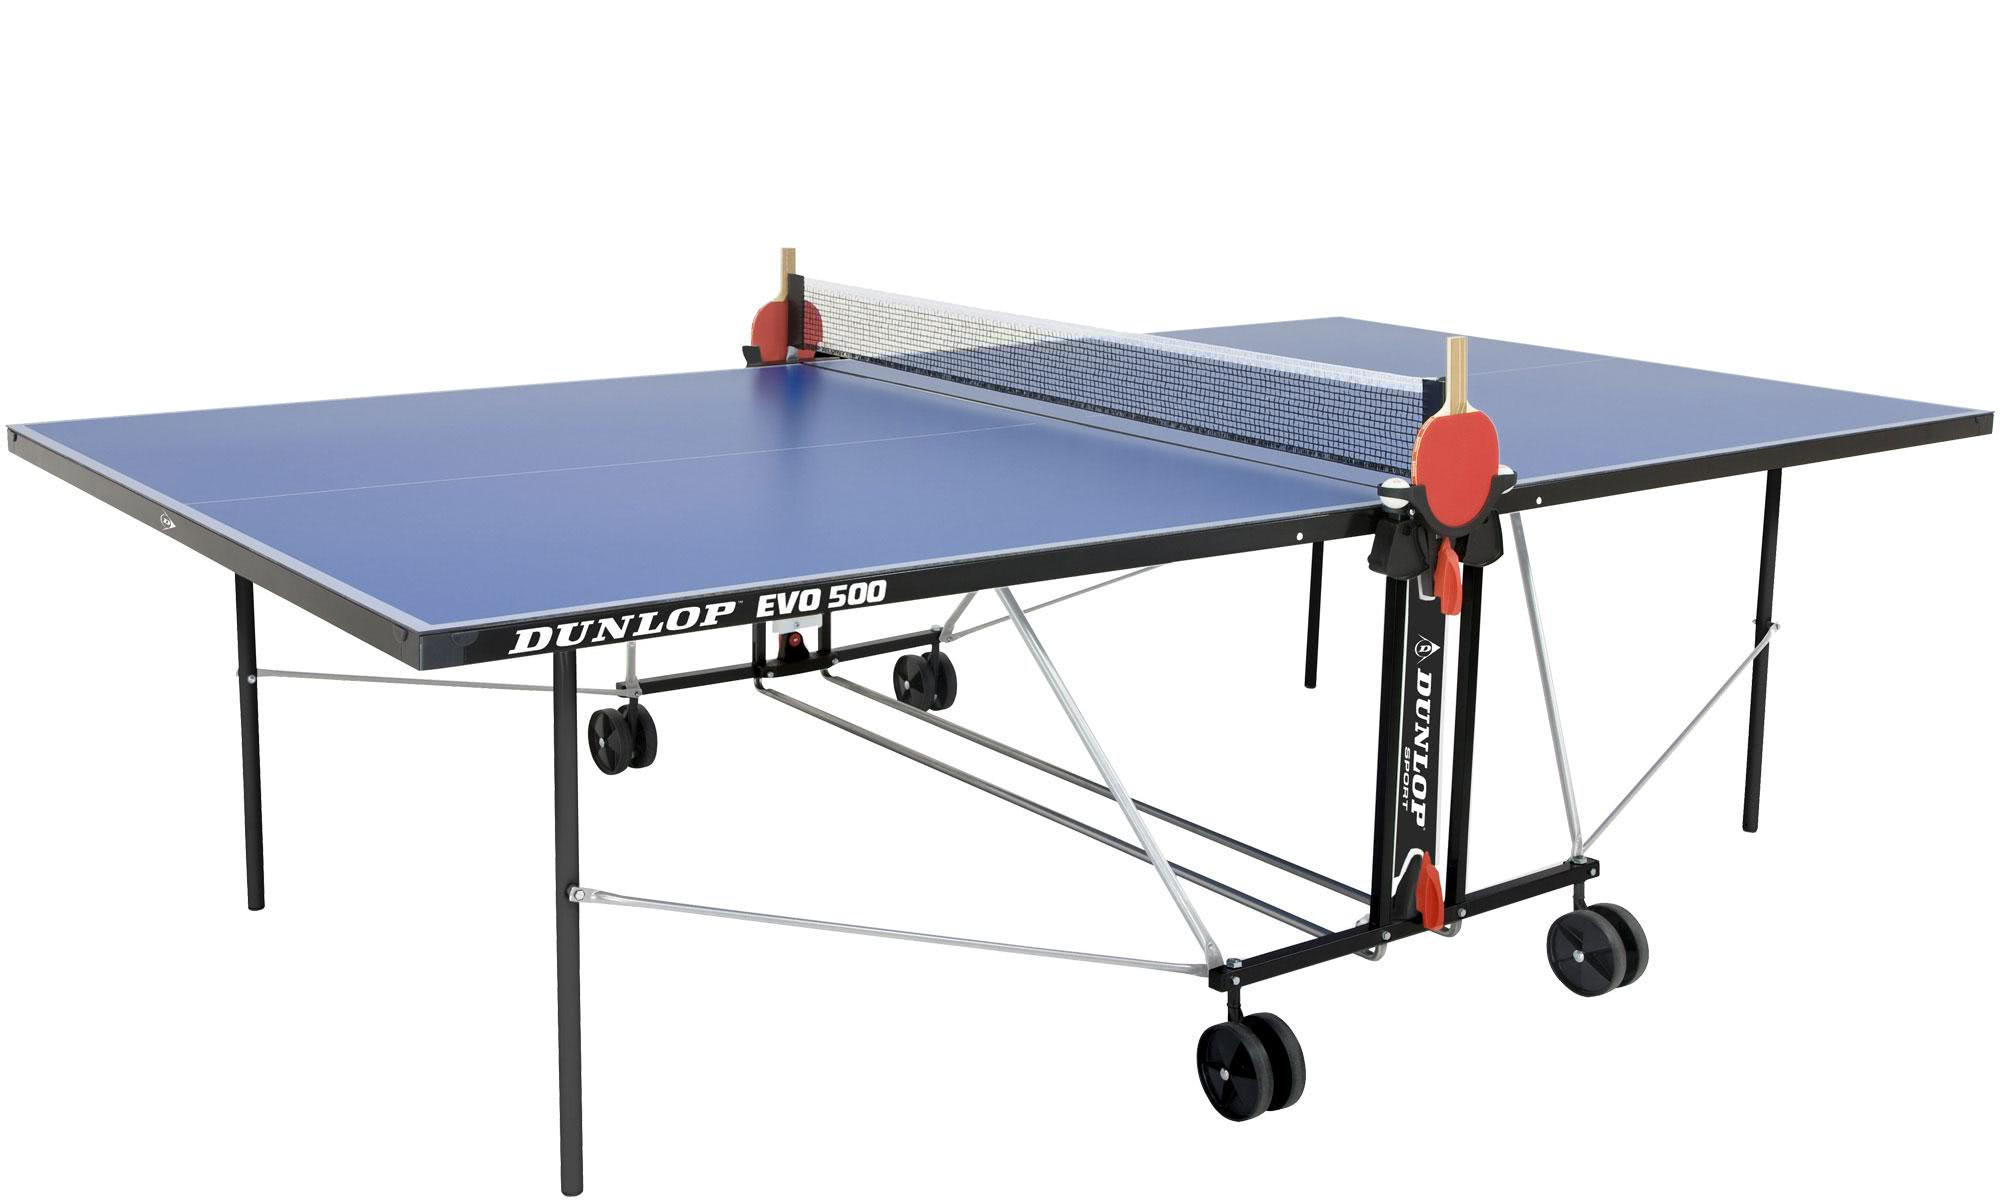 Evo 500 table tennis liberty games - Weatherproof table tennis table ...